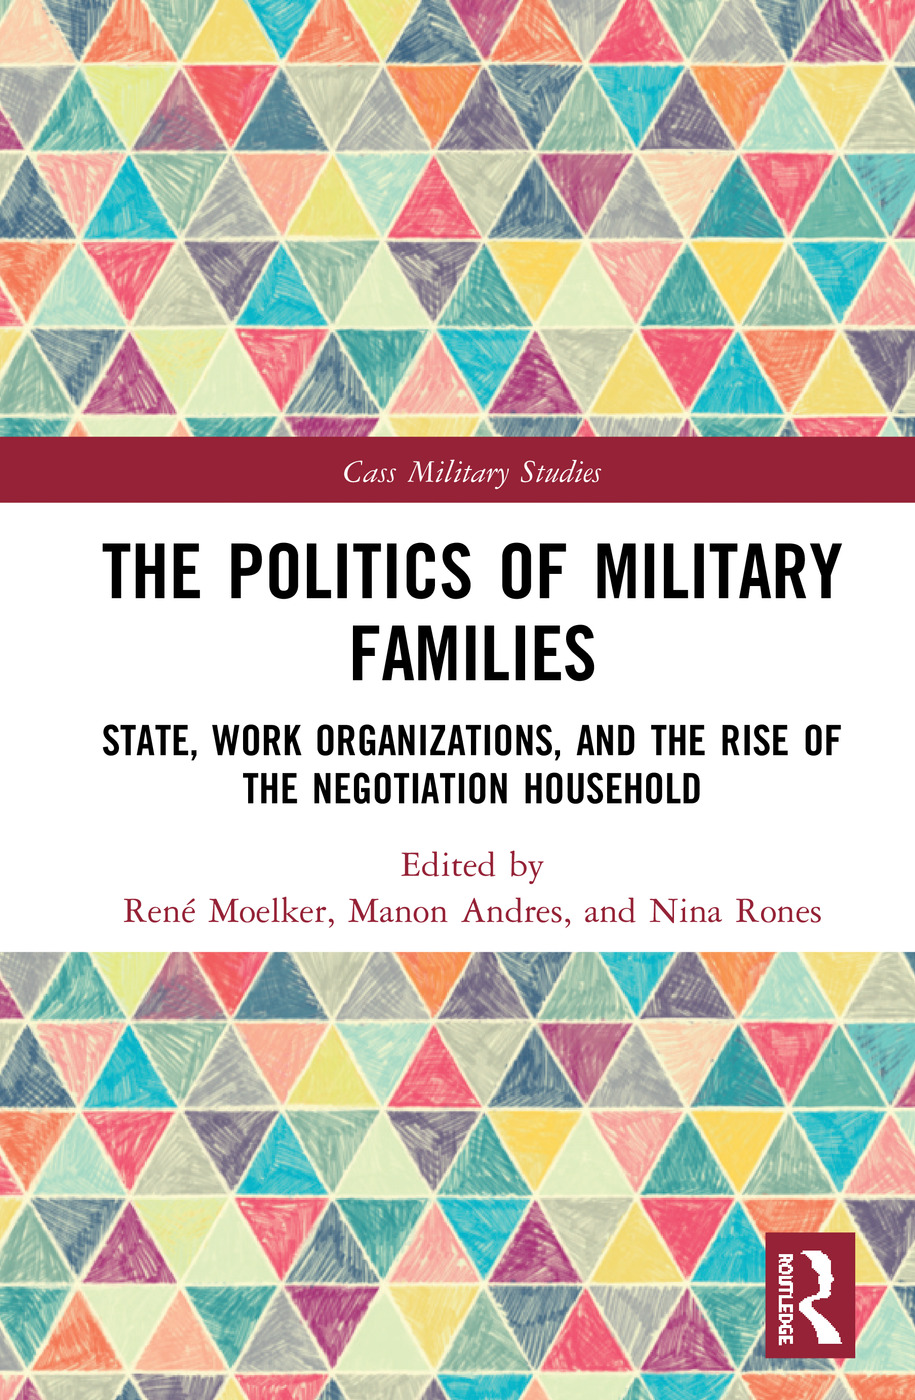 The Politics of Military Families: State, Work Organizations, and the Rise of the Negotiation Household book cover